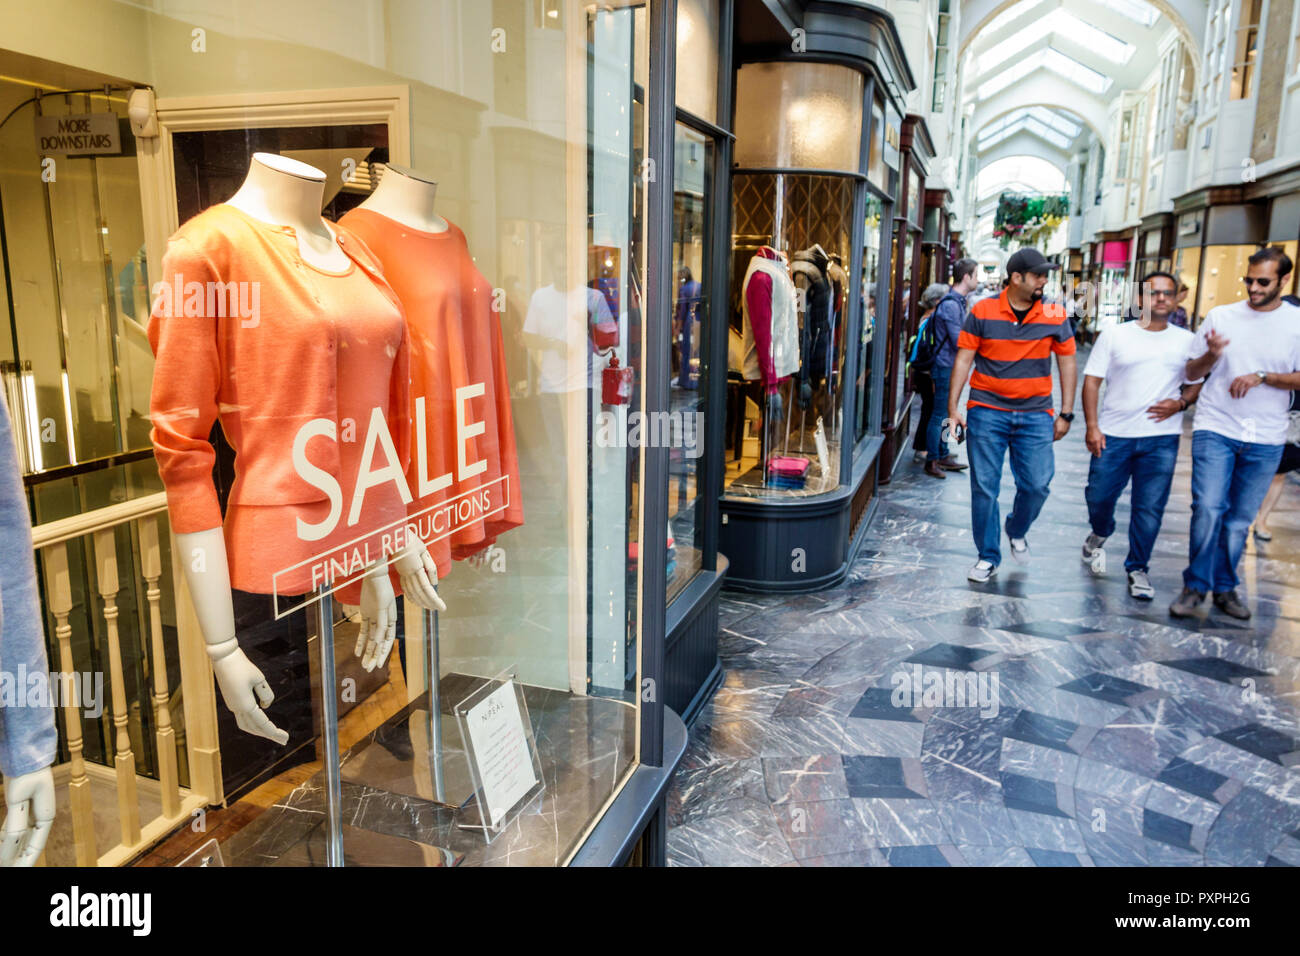 521819f1fbd London England United Kingdom Great Britain Mayfair Burlington Arcade  shopping upmarket luxury covered pedestrian arcade stores